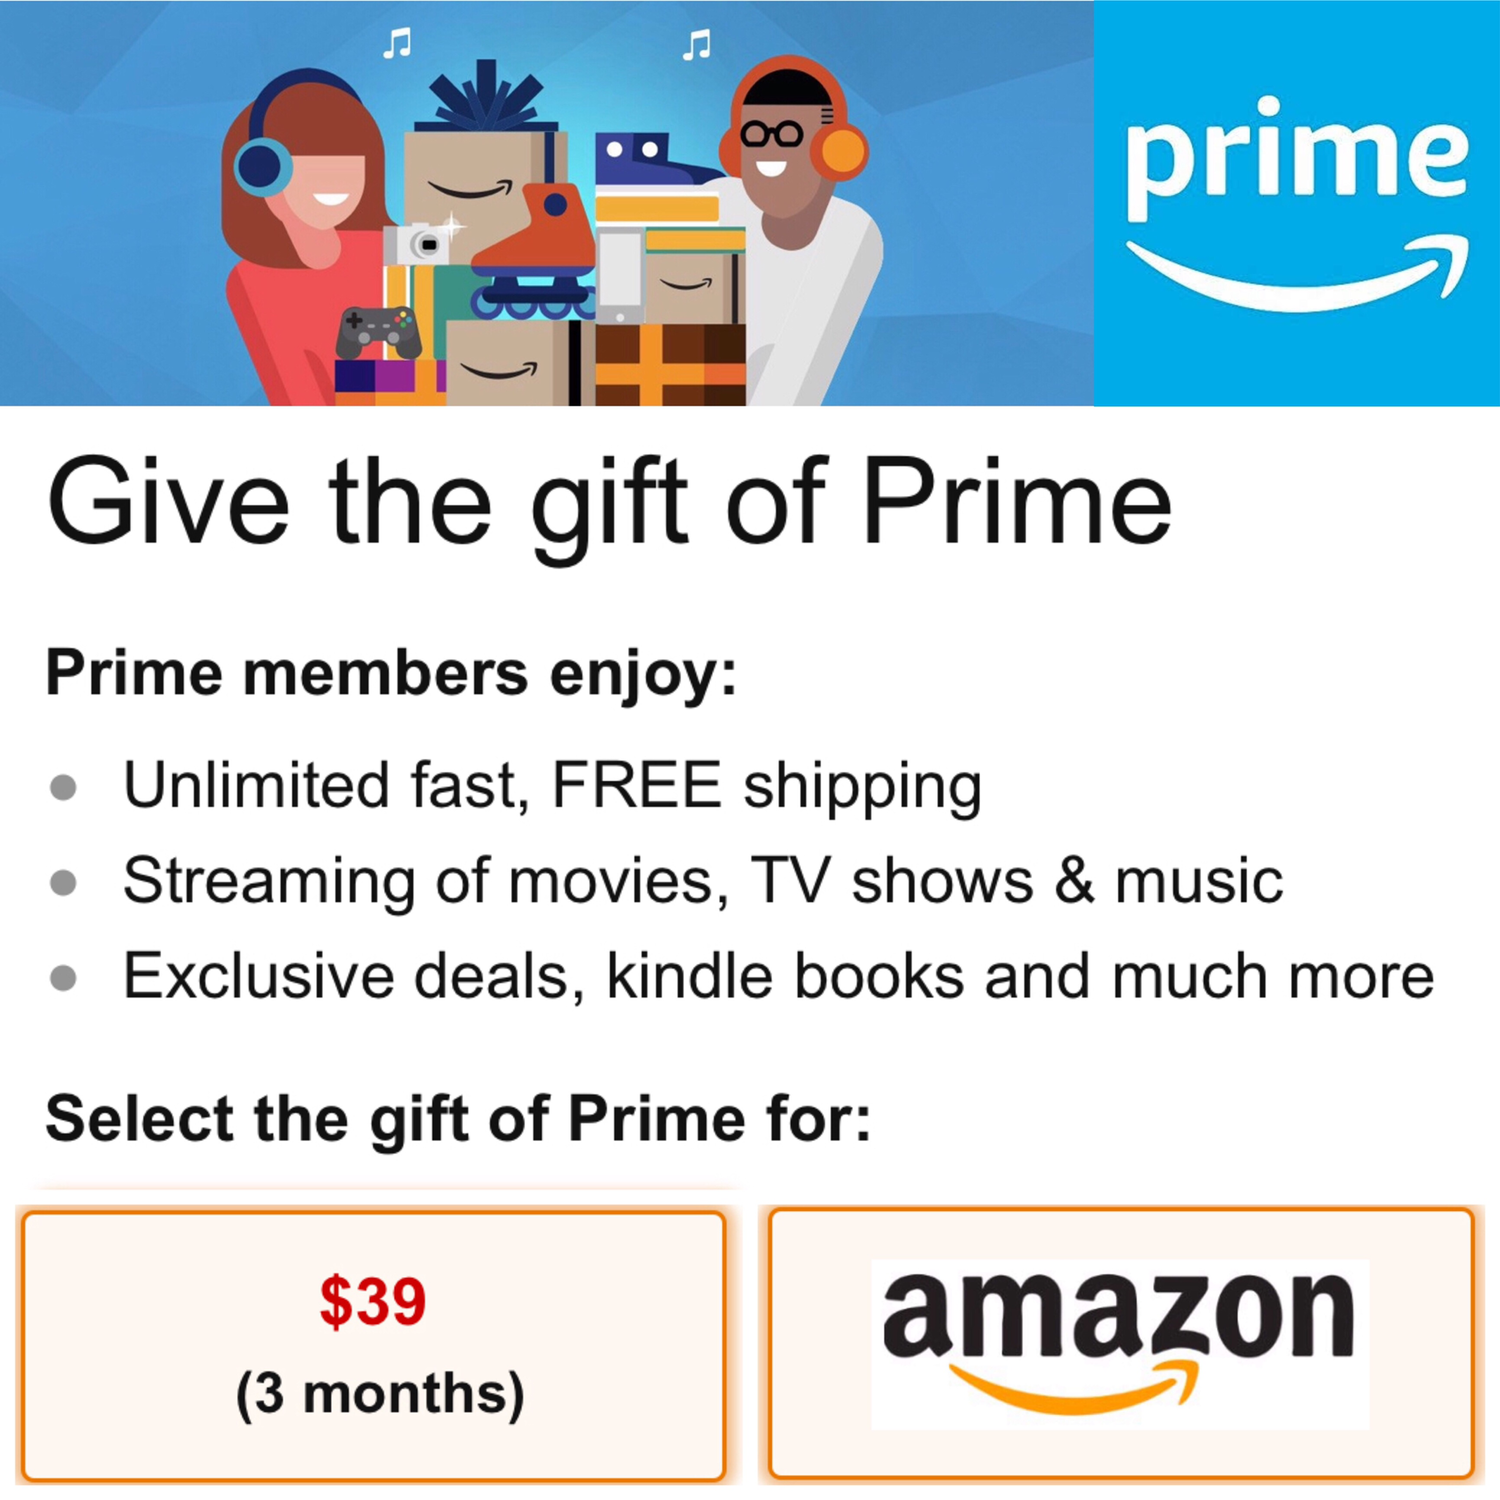 Amazon Prime Give the gift of Prime 3 Months $39